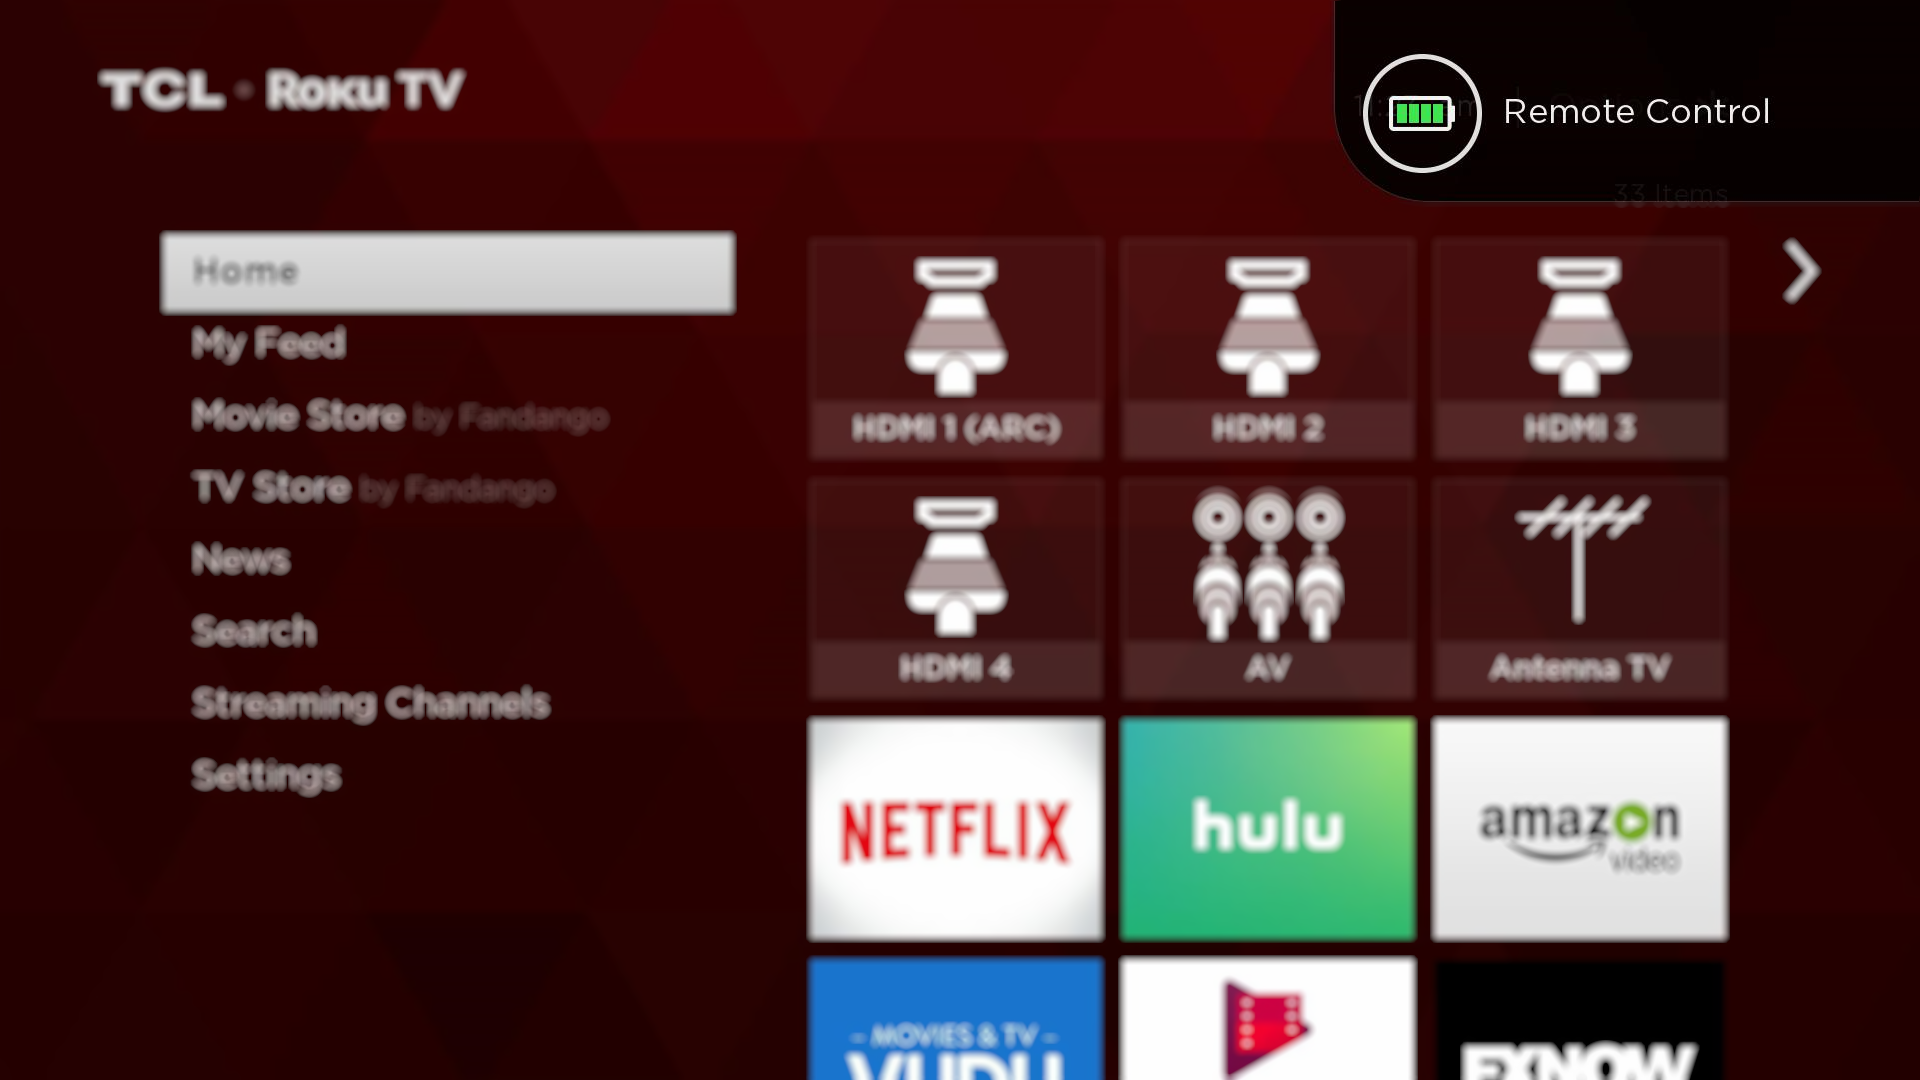 how to connect roku to network without remote